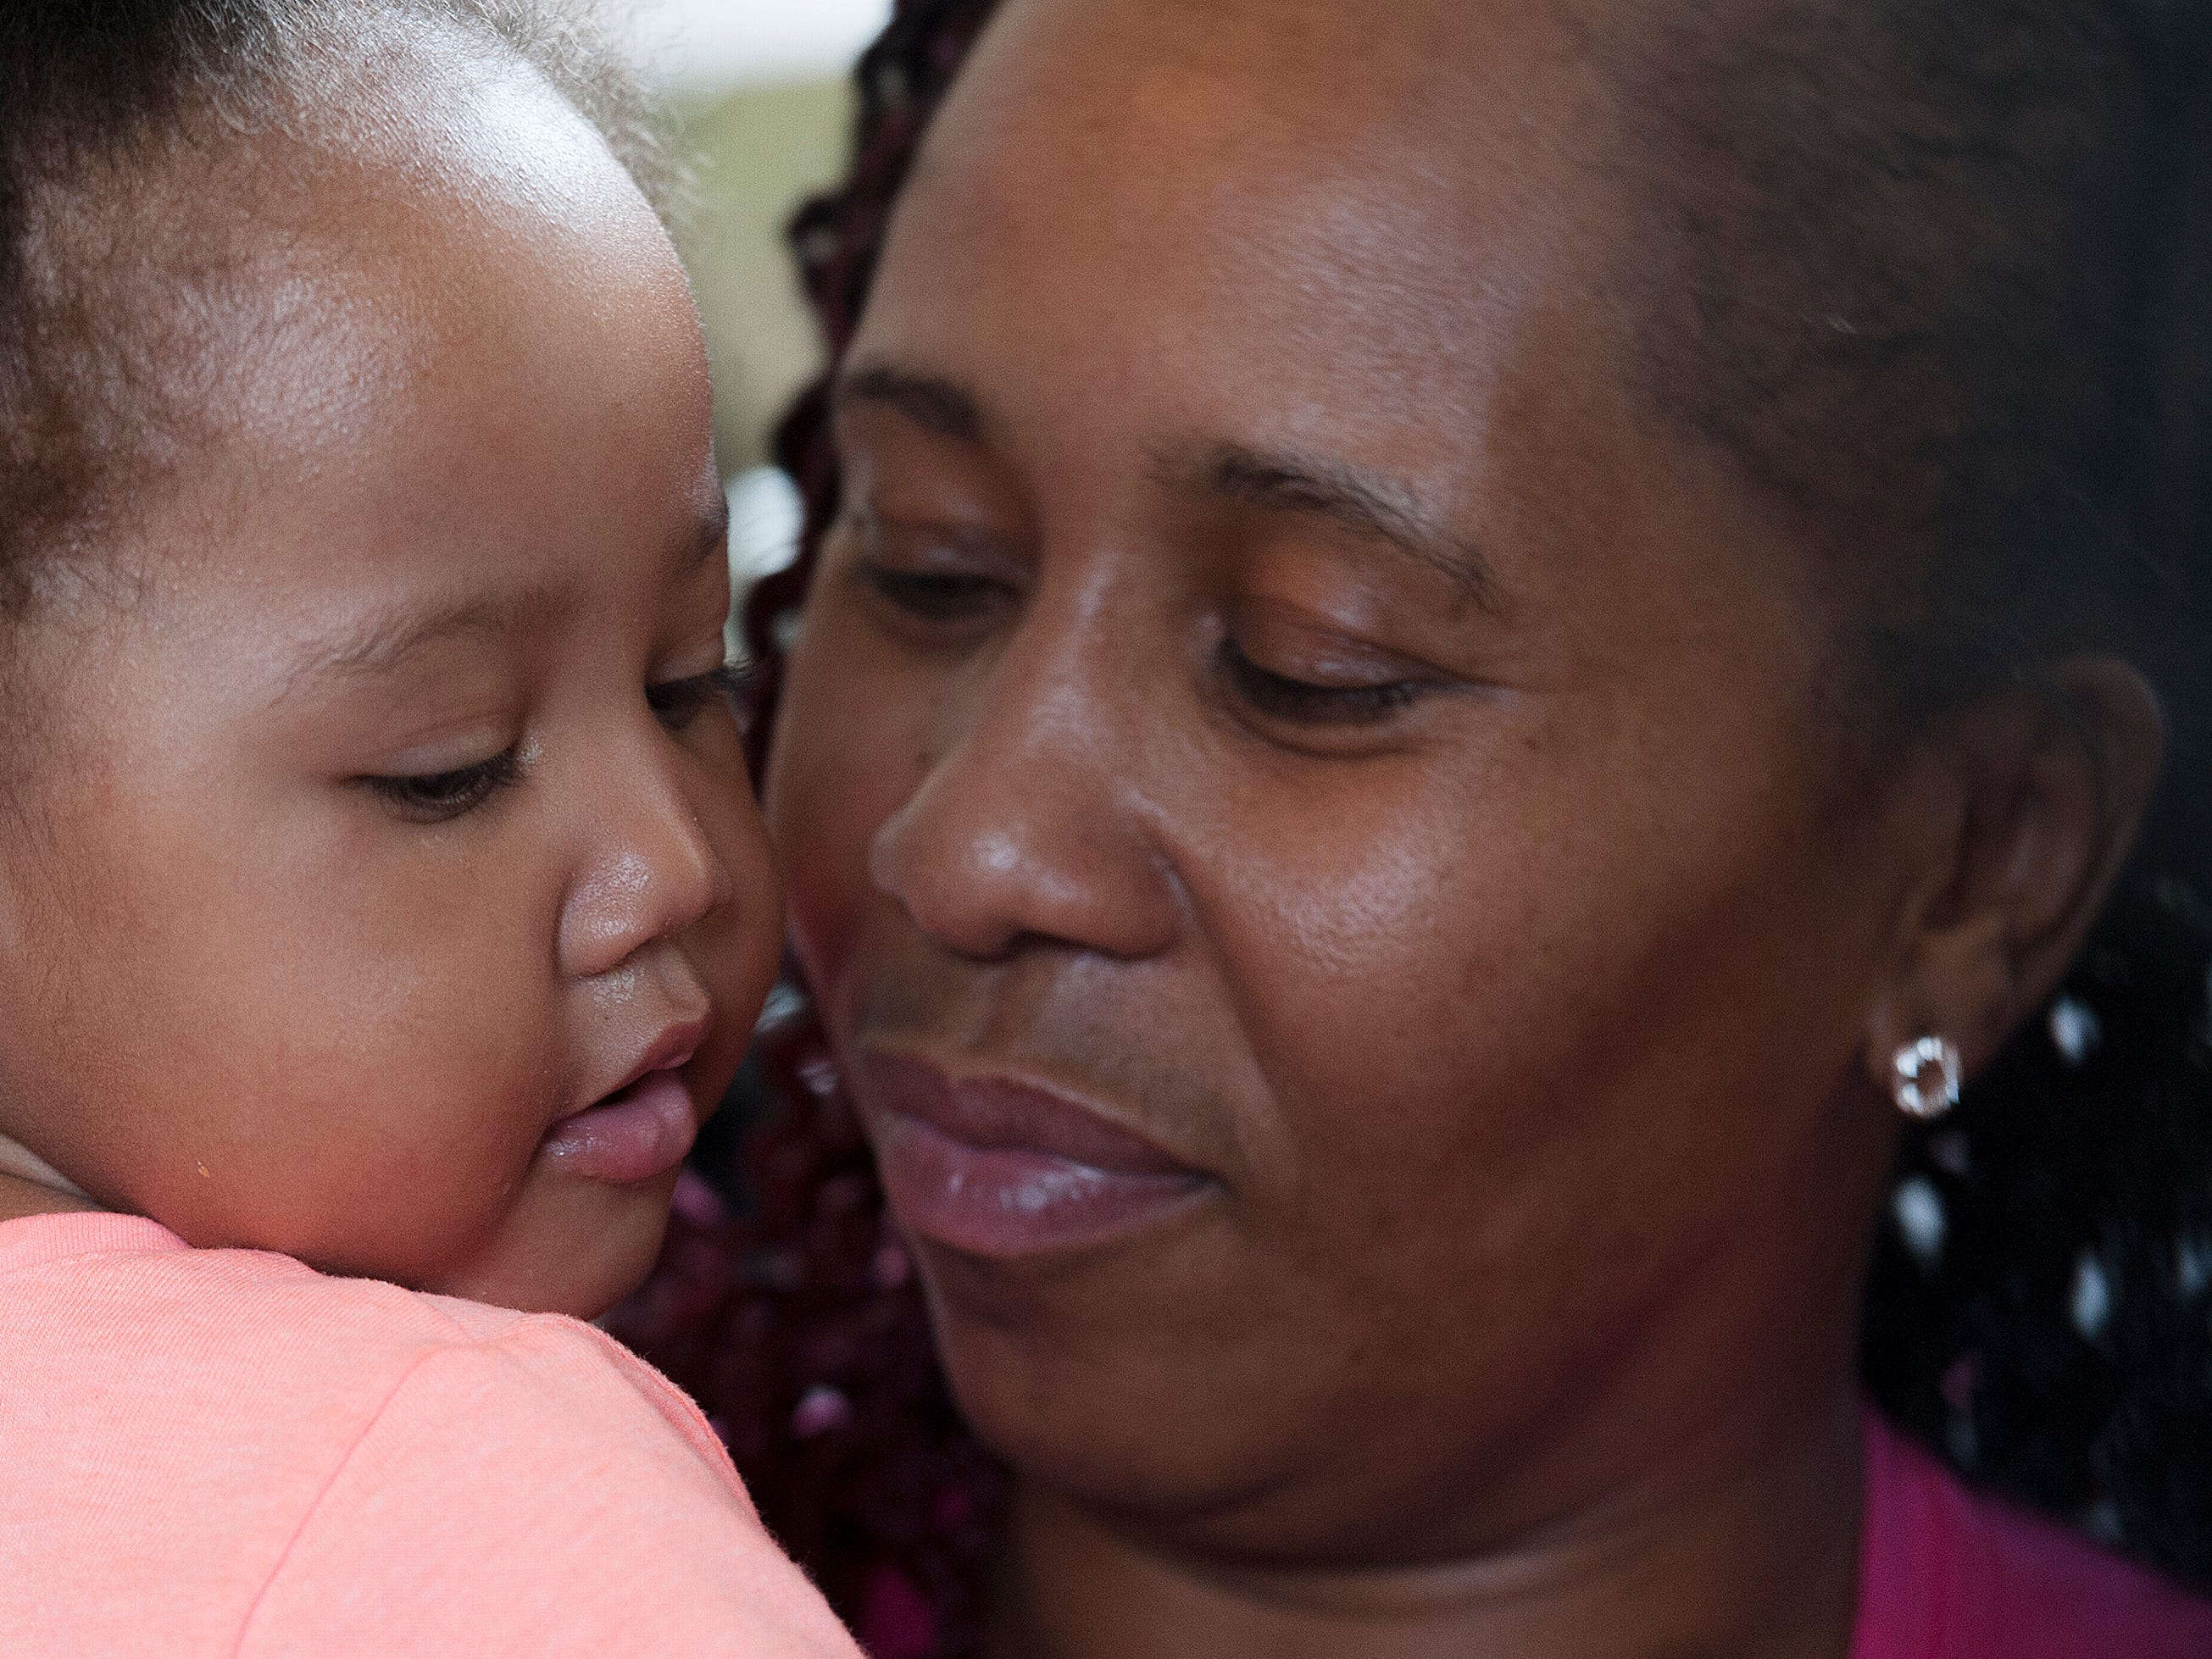 """Makeska Shoemaker holds her granddaughter, A'Dore, 1, in their Aberdeen home Monday, Feb. 25, 2019. In the early hours of Sunday, Jan. 27, 2019, A'Dore's mother, Shyteria Shardae """"Shy"""" Shoemaker, died after family members rushed to get her medical care in a county where there is no emergency room. Makeska Shoemaker wonders how long it will be before the toddler understands her mother isn't coming home."""